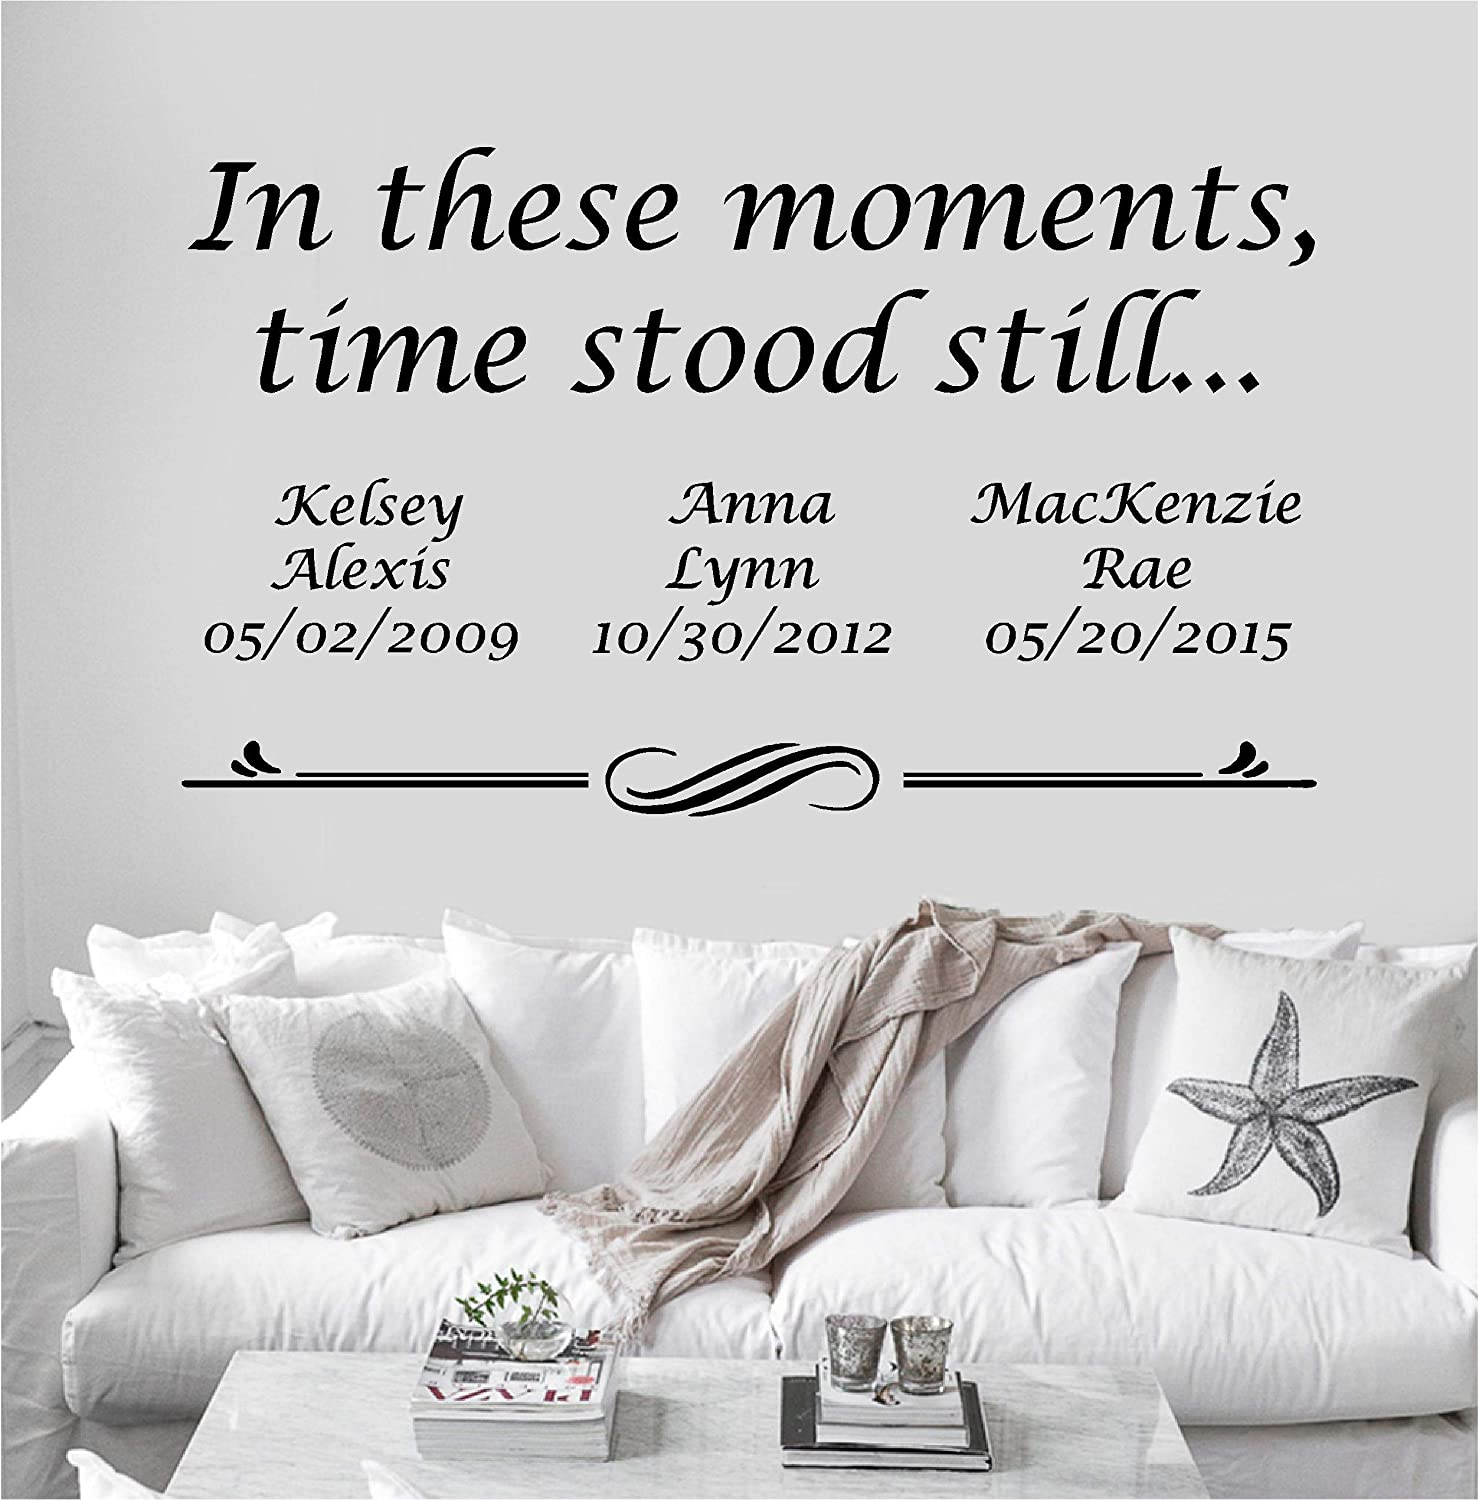 Personalized Custom In These Moments Time Stood Still Name Date Wall Decal Sticker Customized Choose Size Color Vinyl Home Family